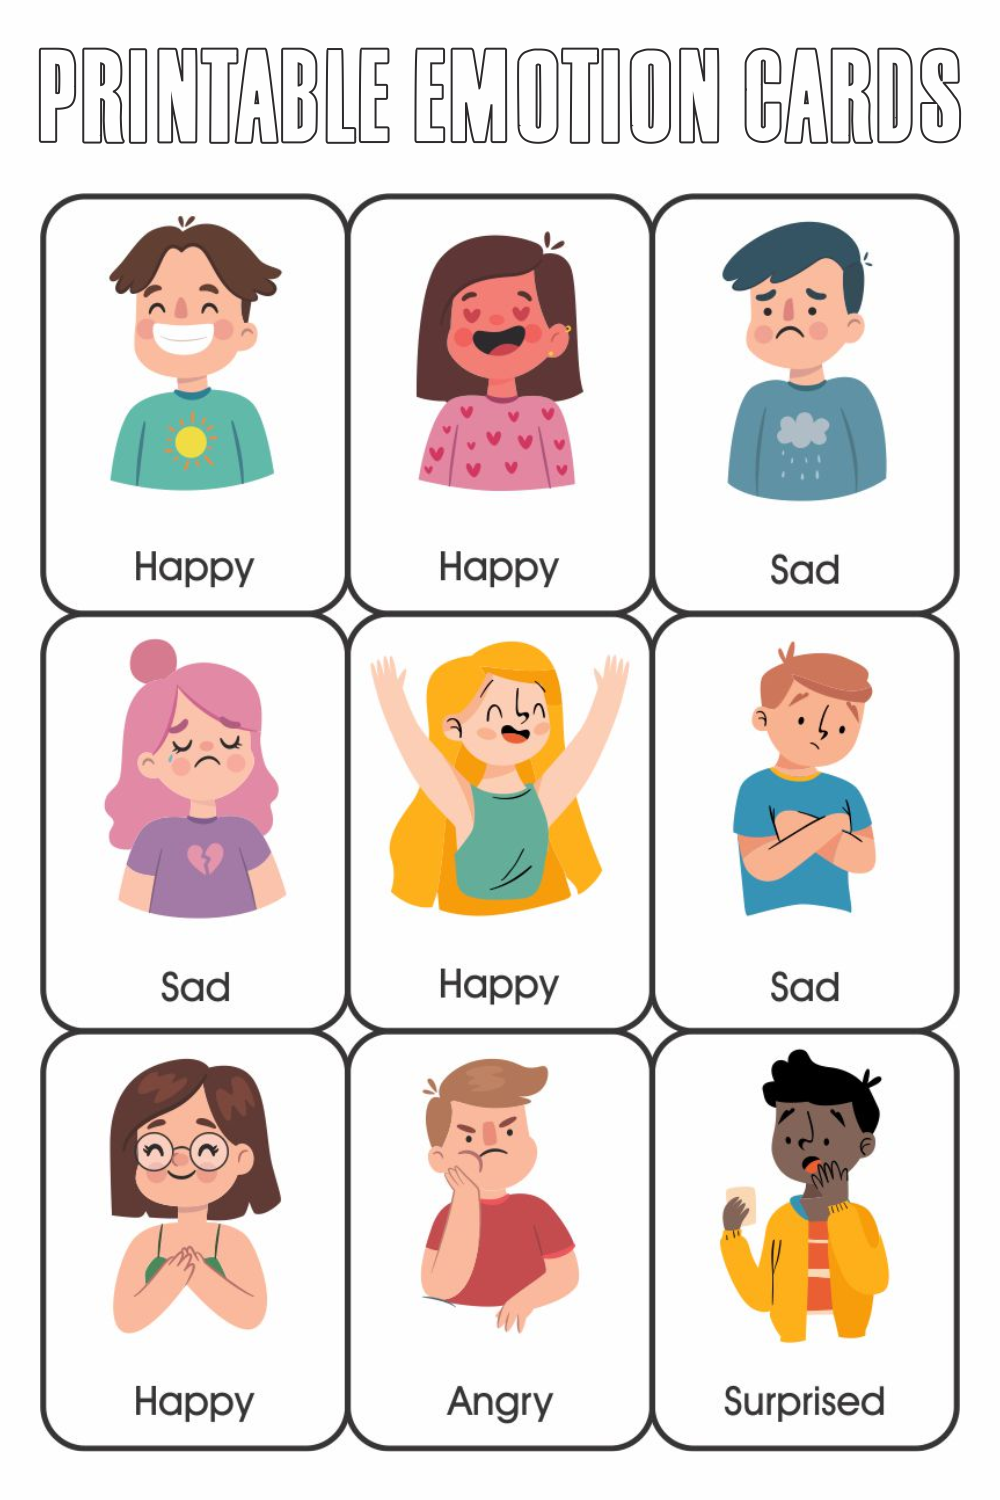 10 Best Printable Emotion Cards Printablee Com - View Printable Emotions Worksheets For Kindergarten Background